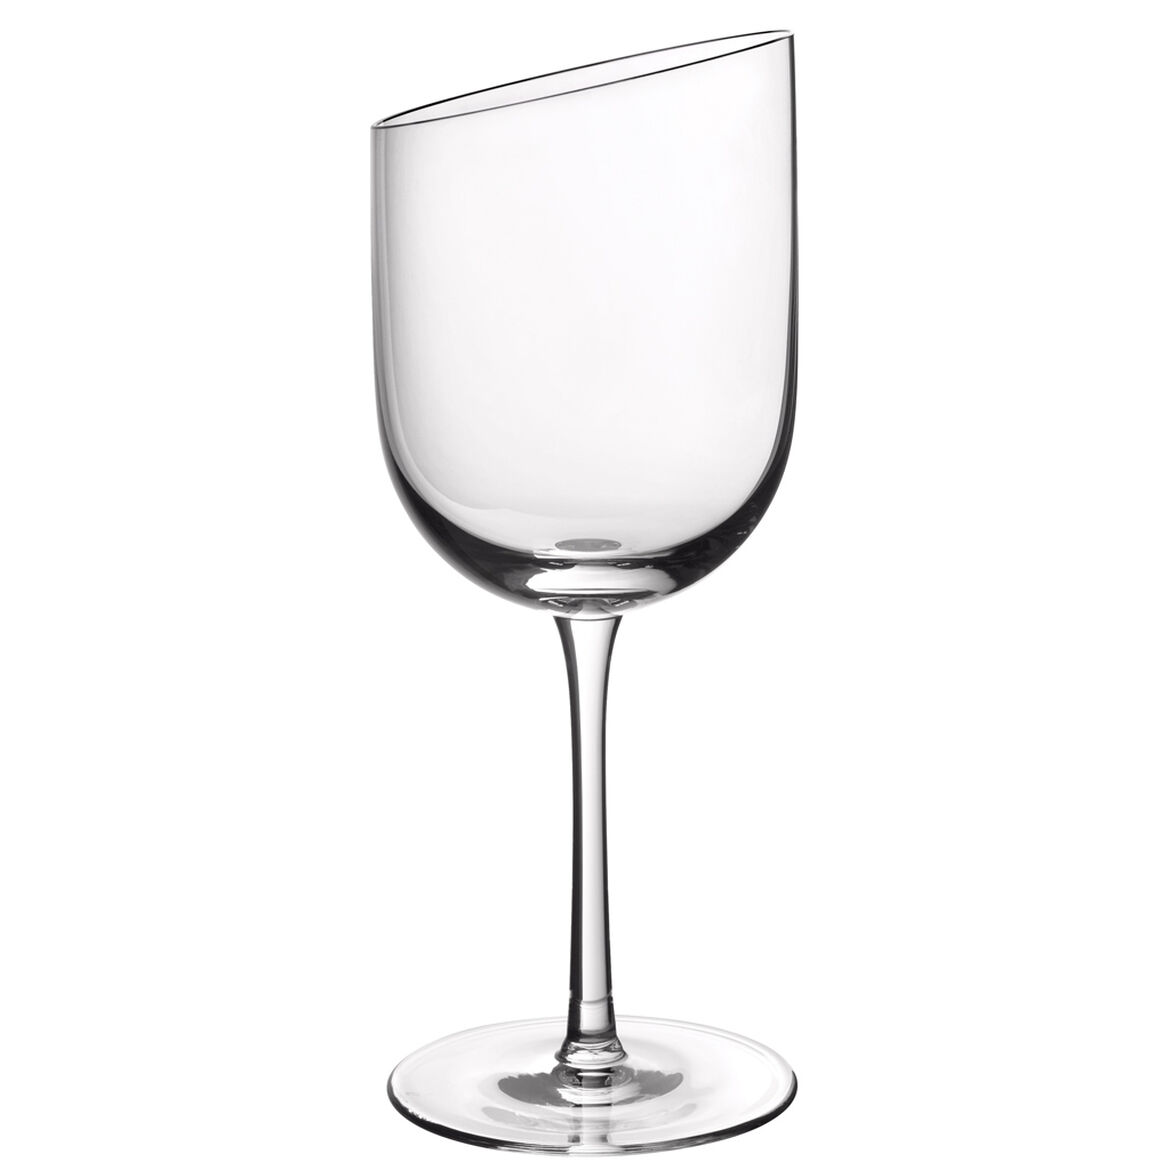 NewMoon Red Wine Goblet Set of 4 410ml